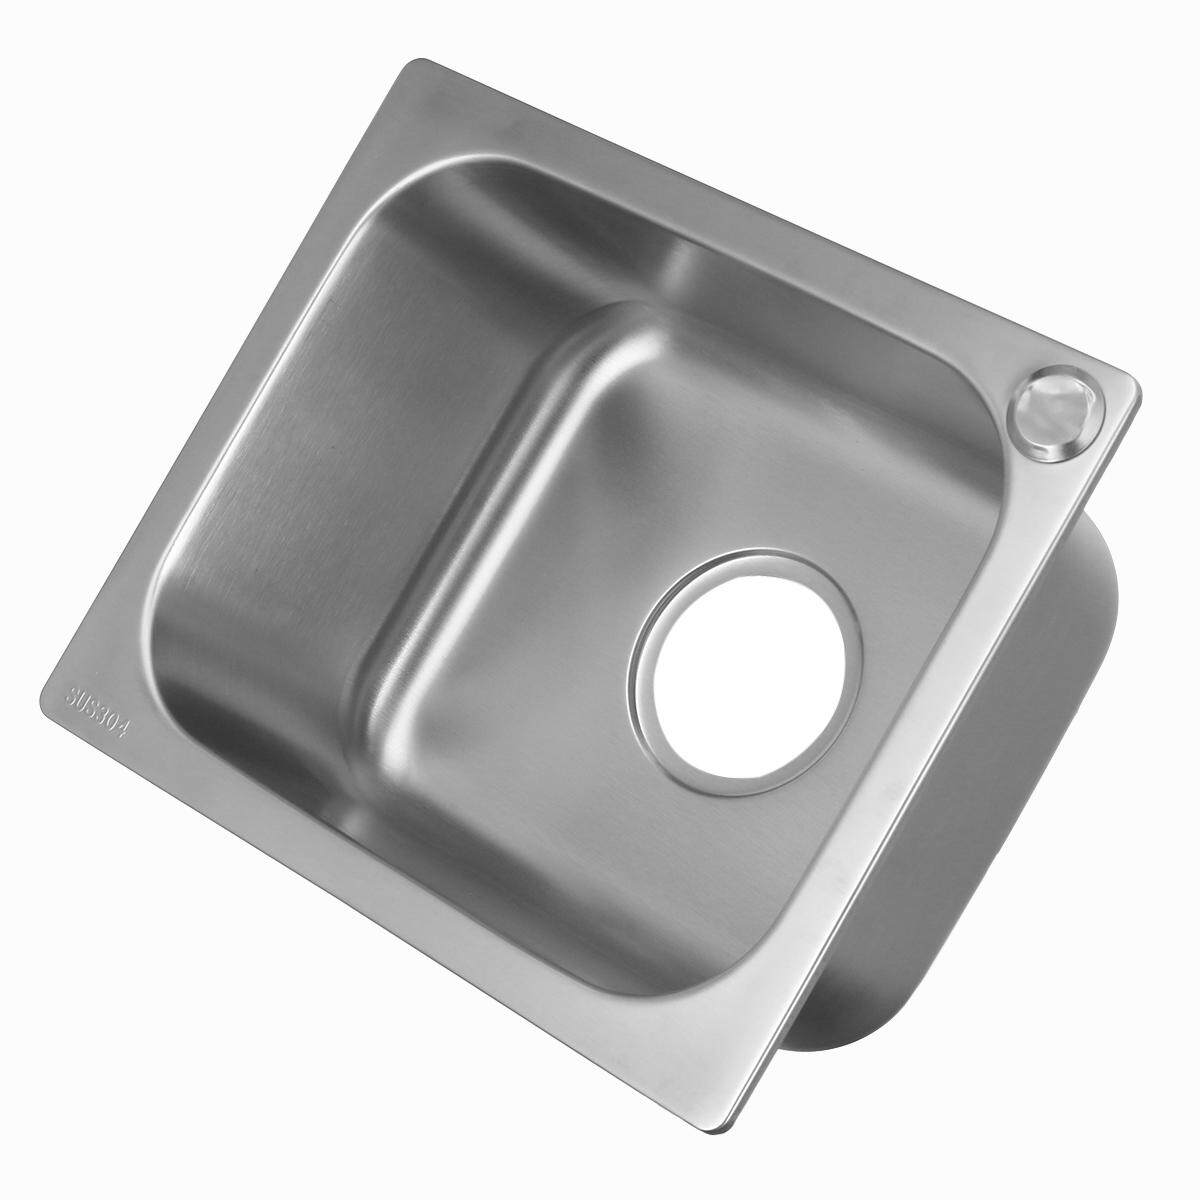 Inset Kitchen Sink Buy small bar single bowl inset kitchen sink stainless steel tub small bar single bowl inset kitchen sink stainless steel tub workwithnaturefo